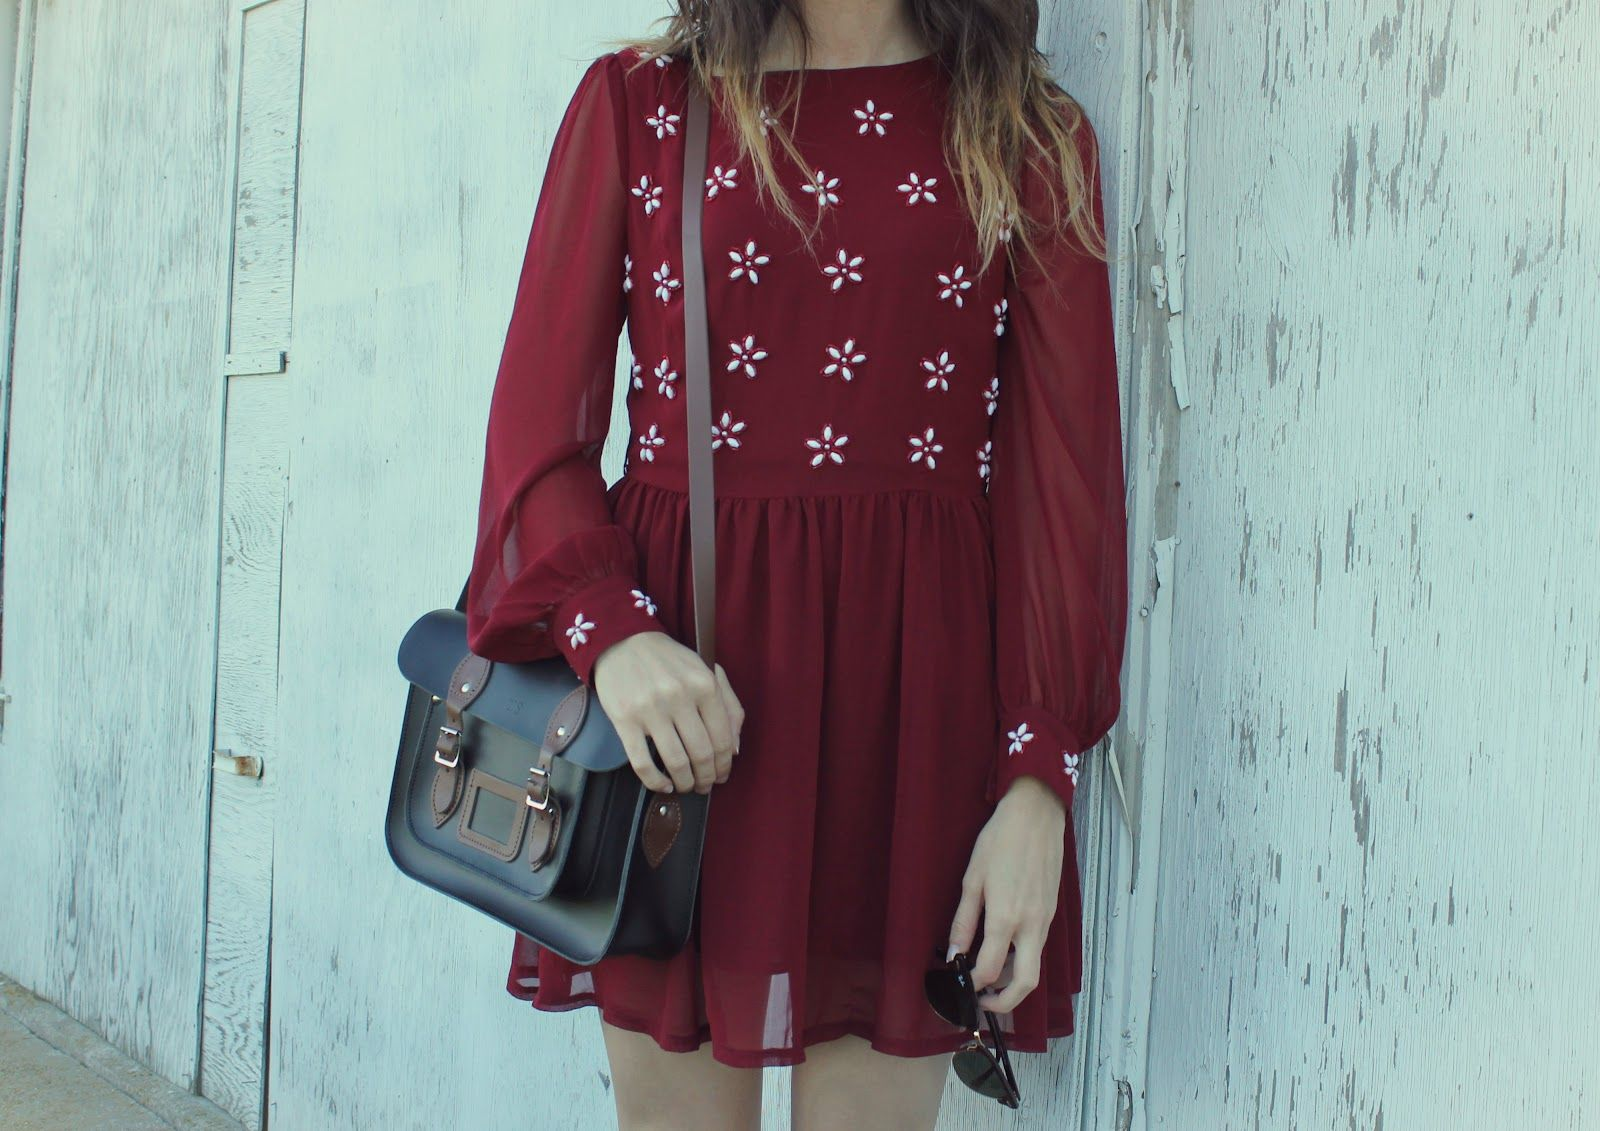 Long sleeves short length absolutely love this dress perfect for